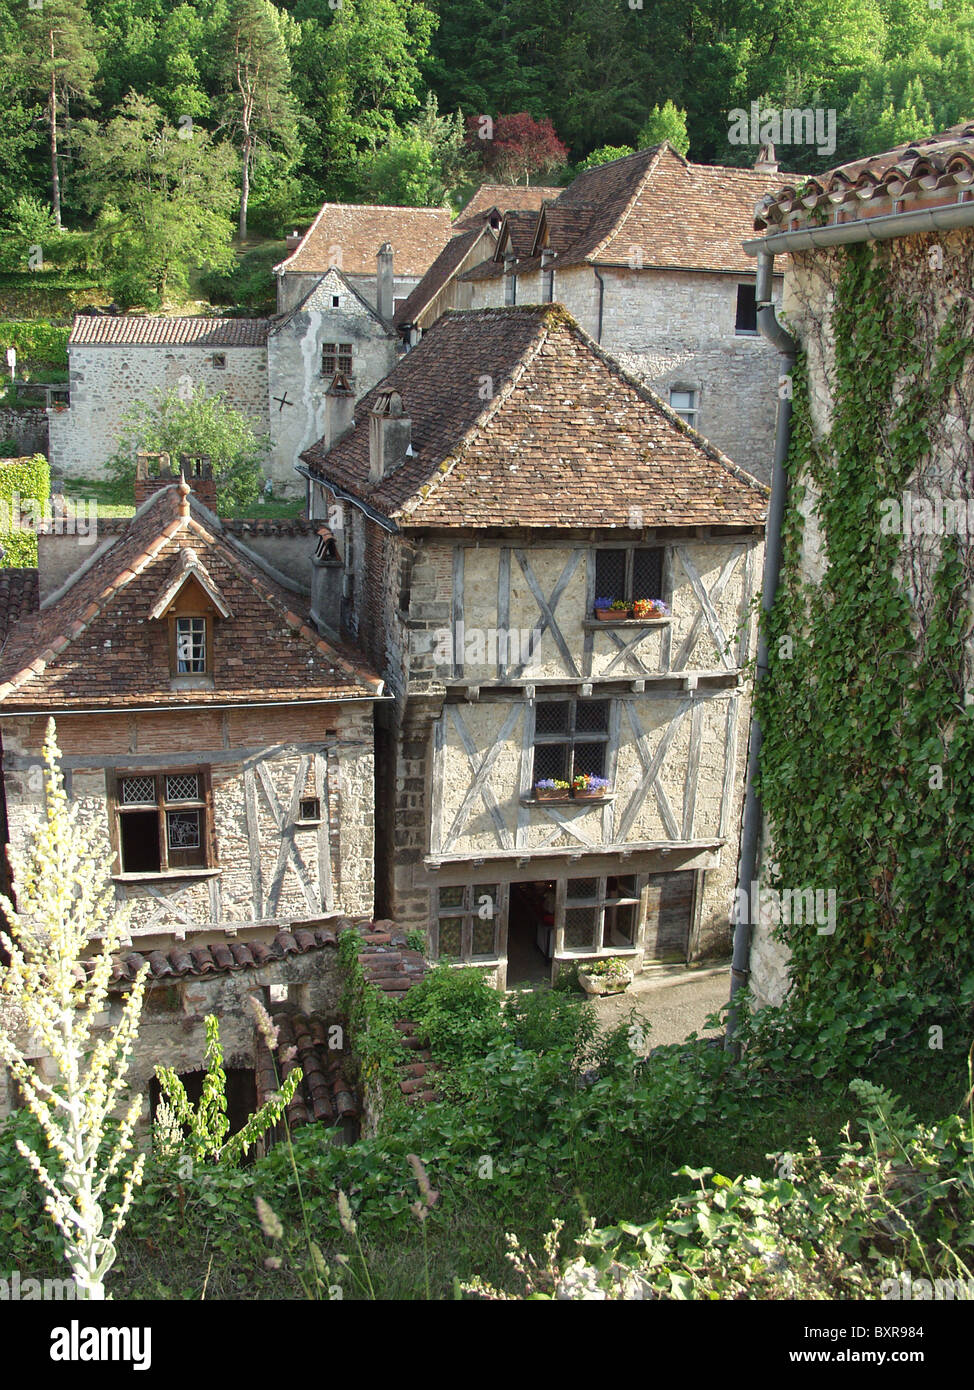 Houses in the village of St-Cirq-Lapopie in the Dordogne - Stock Image